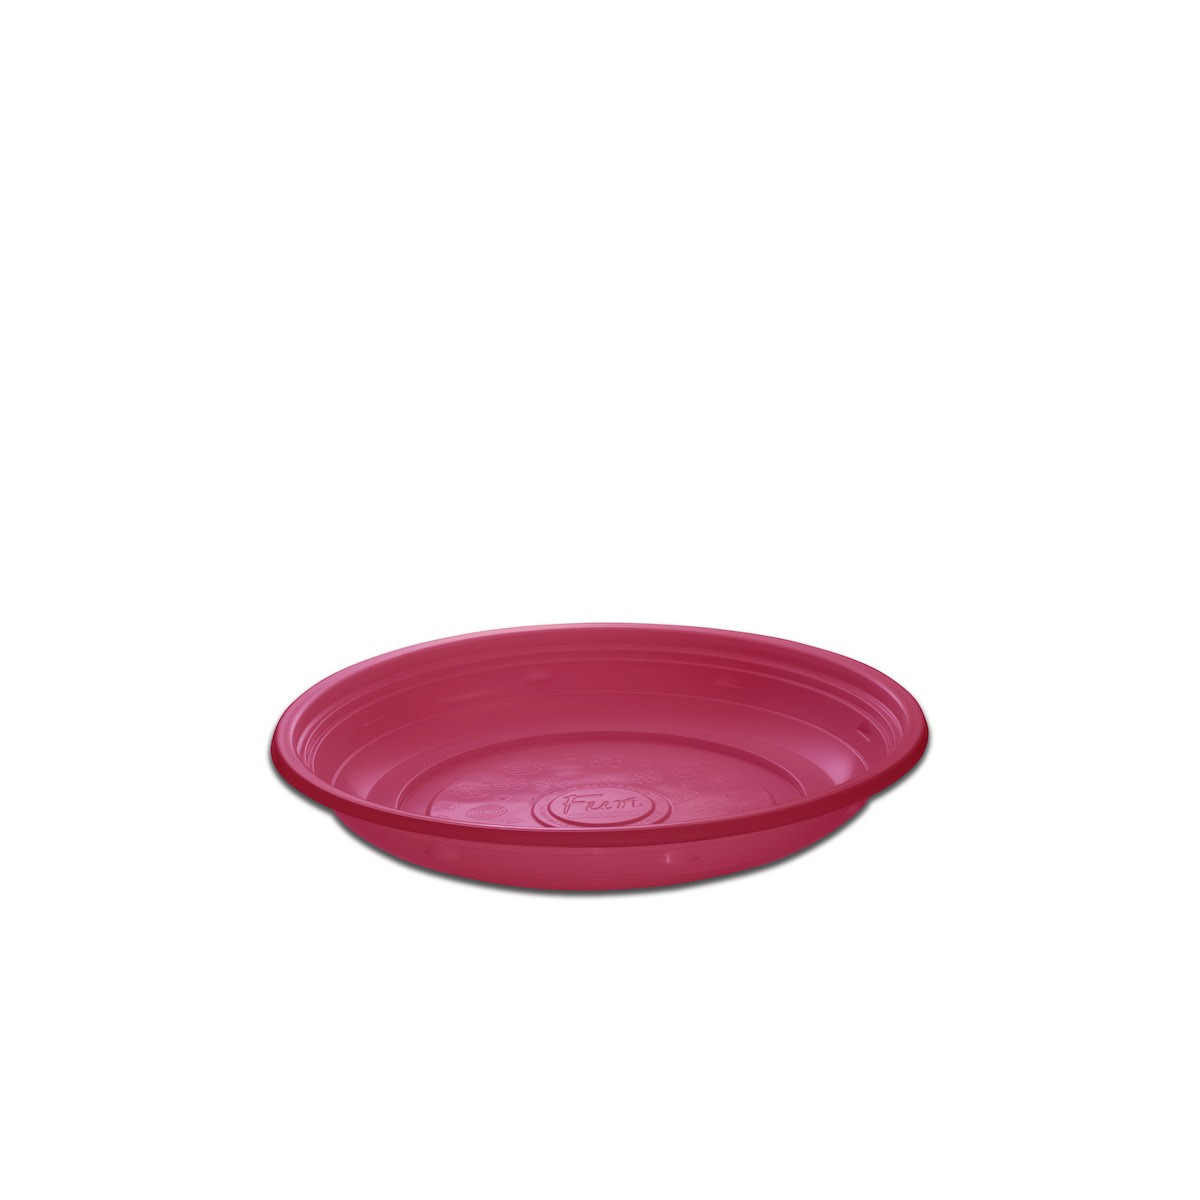 Roundpac Round Plate ⌀18cm - PP/Pink Deluxe | 25pcsx10pkts